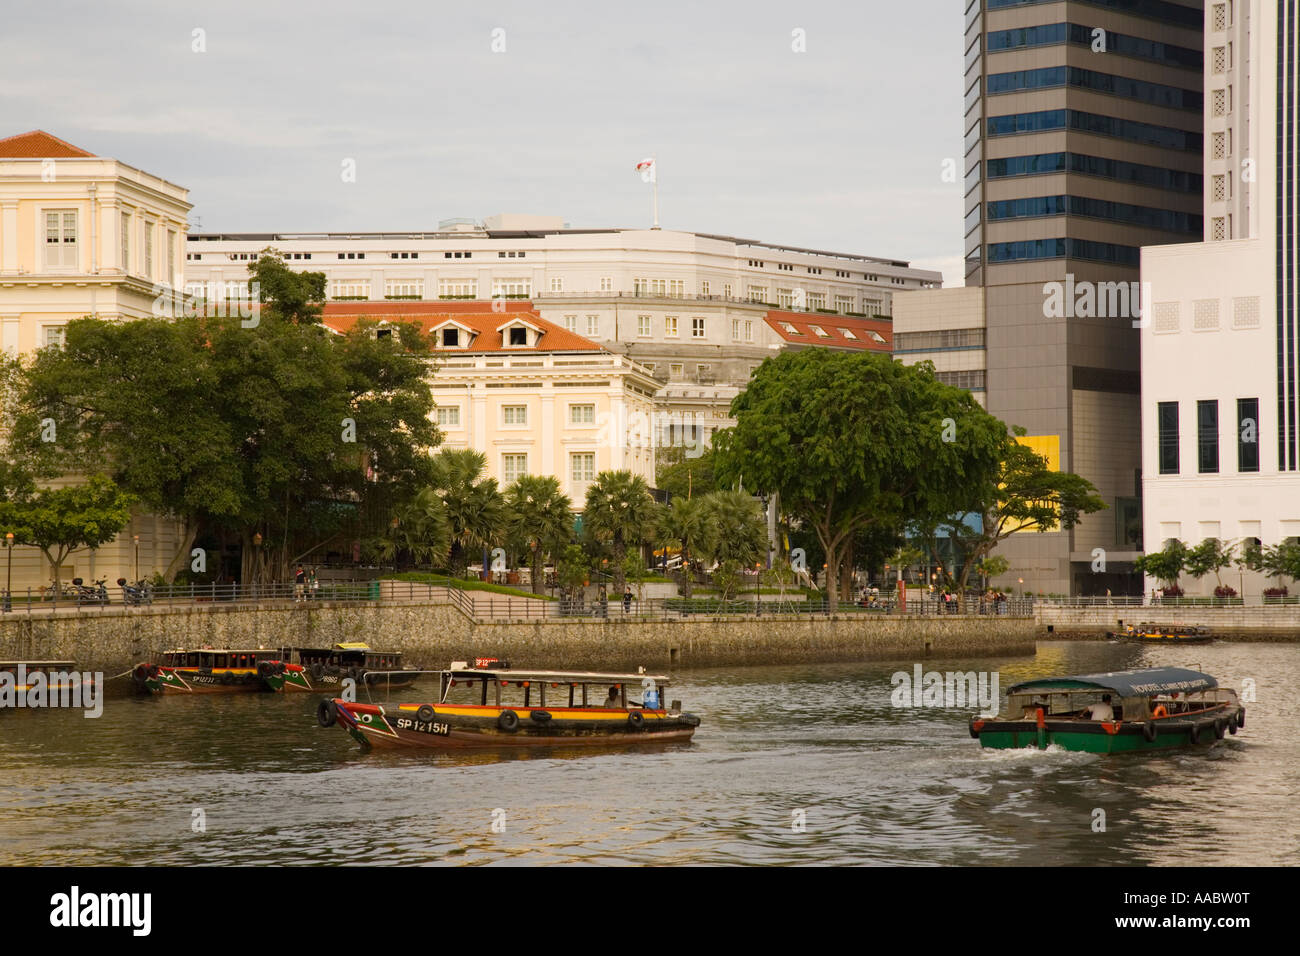 Bumboat River Taxis giving tourist cruises past Asian Civilisations Museum on North Boat Quay, Civic District, Singapore - Stock Image